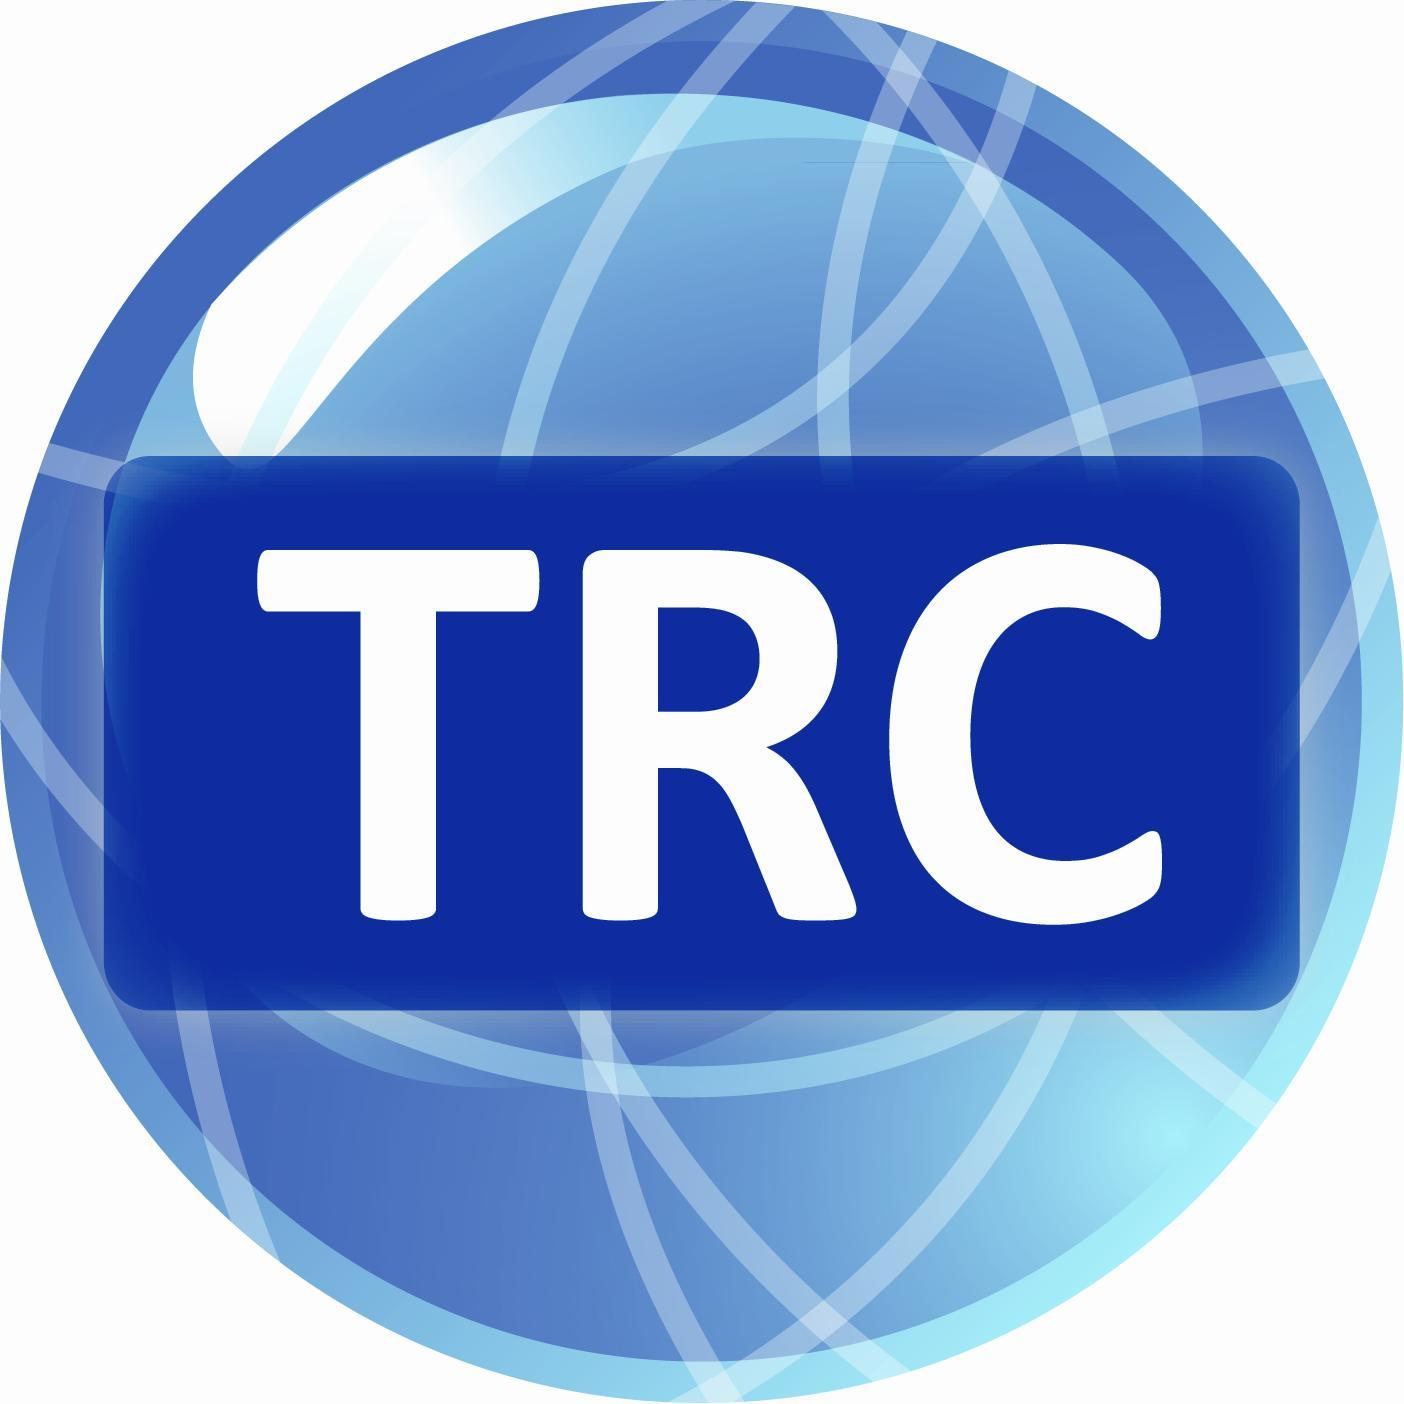 Transnational Referral Certification logo